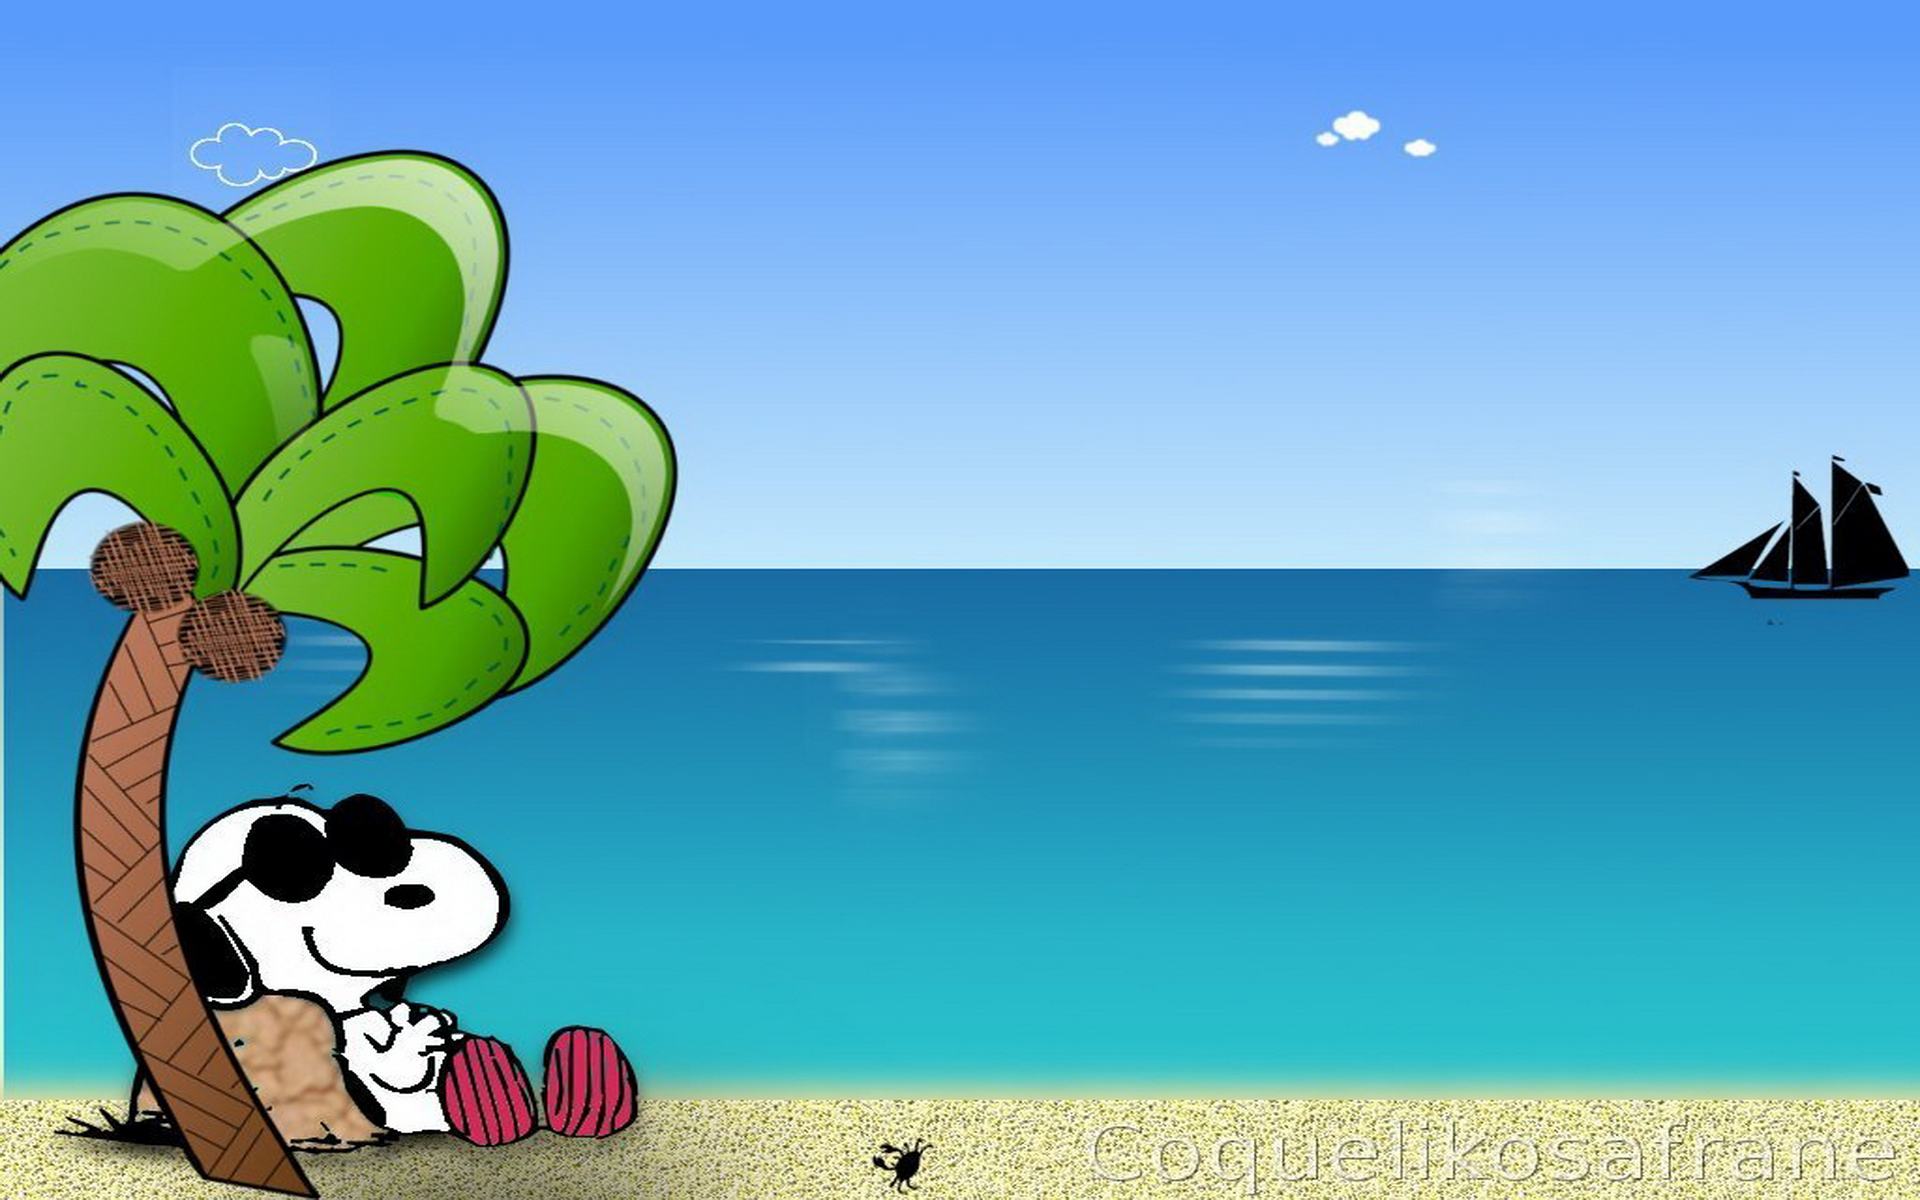 Snoopy Wallpapers Snoopy Wallpaper 49jpg 1920x1200 1920x1200